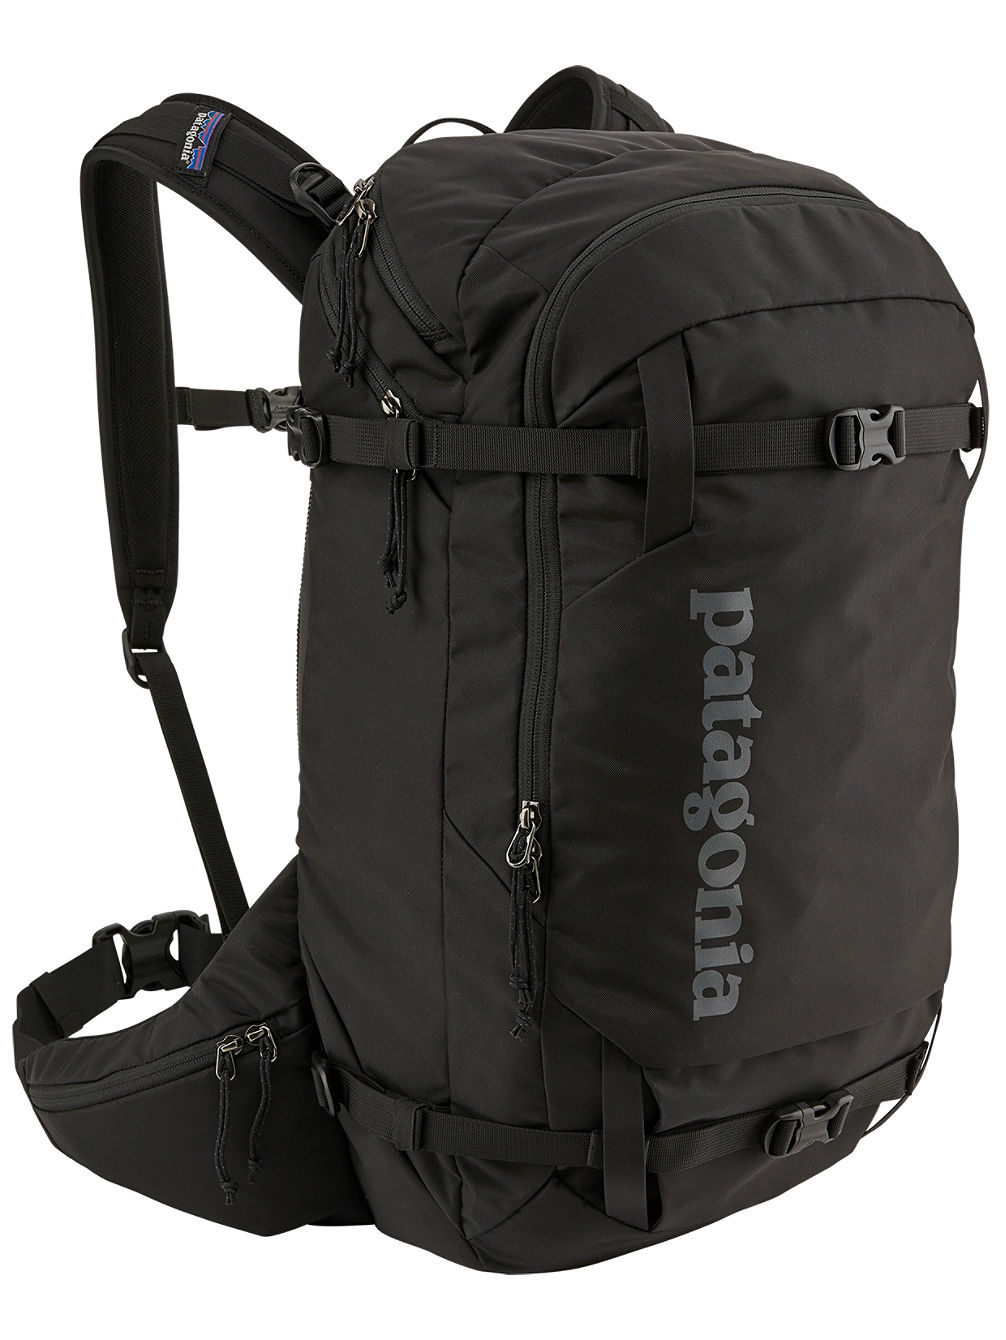 Snow Drifter 30L Backpack